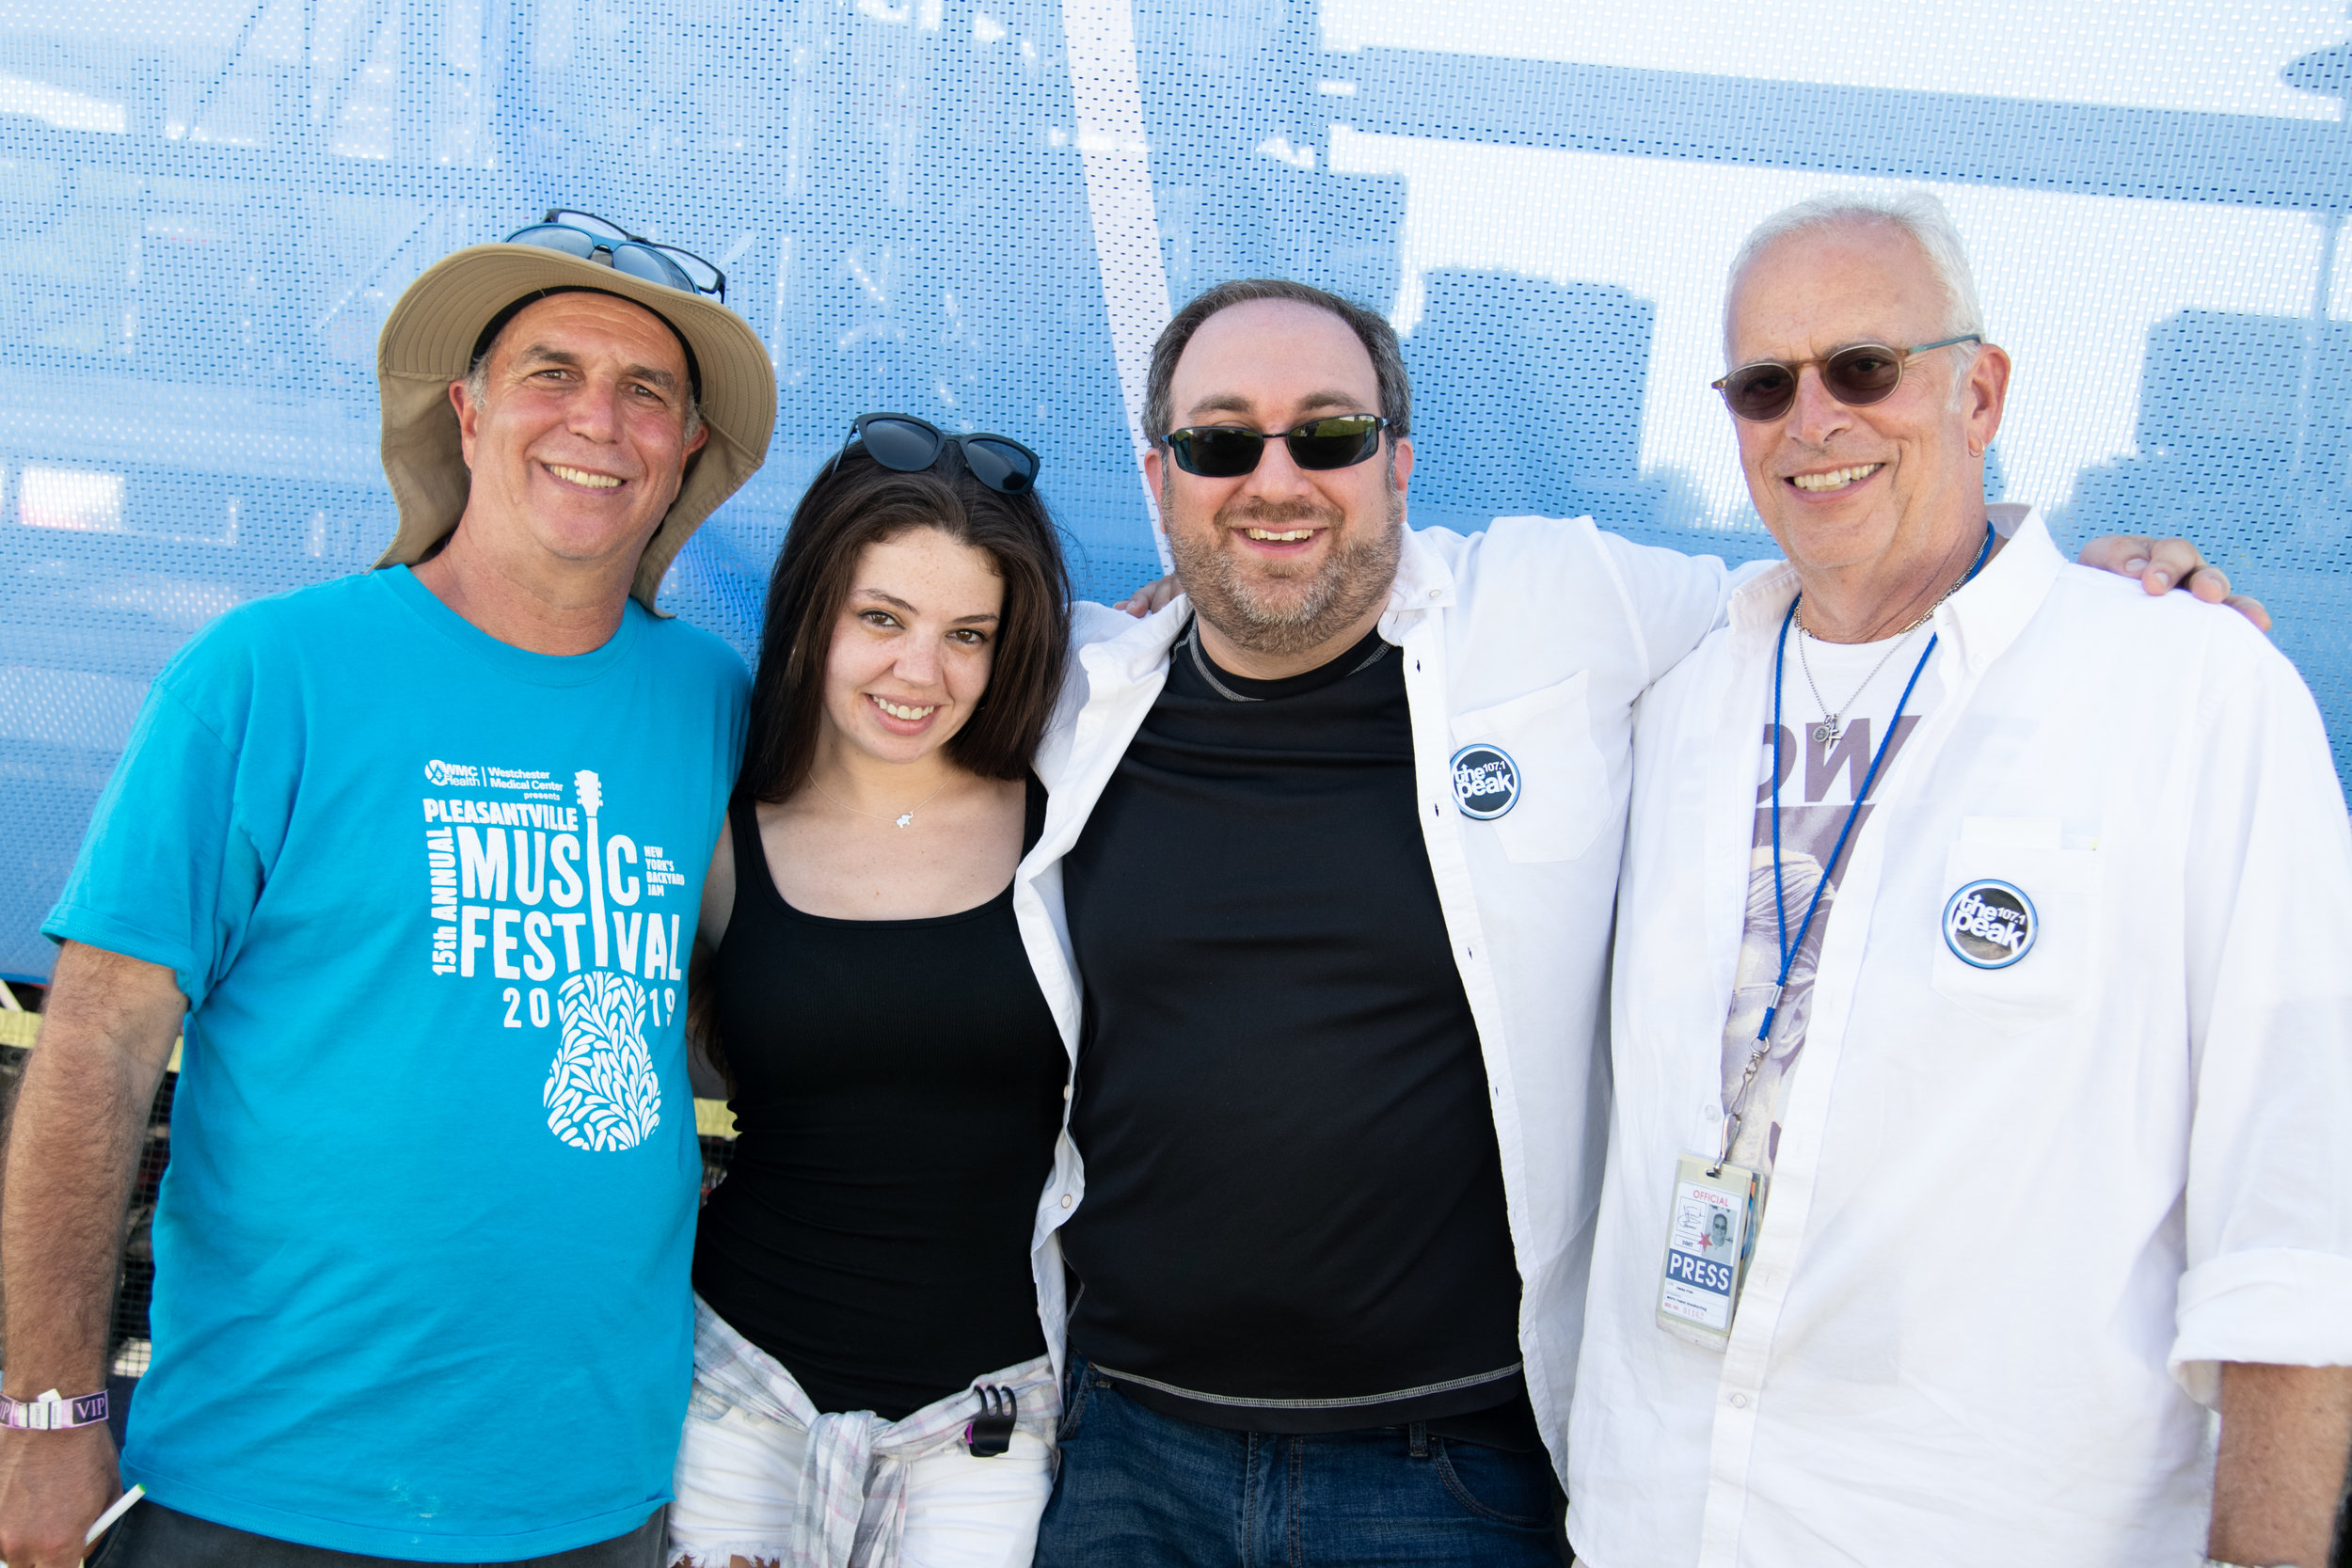 PMF Executive Director Bruce Figler with his Peak colleagues, Meg White, Coach, and Jimmy Fink © 2019 Lynda Shenkman